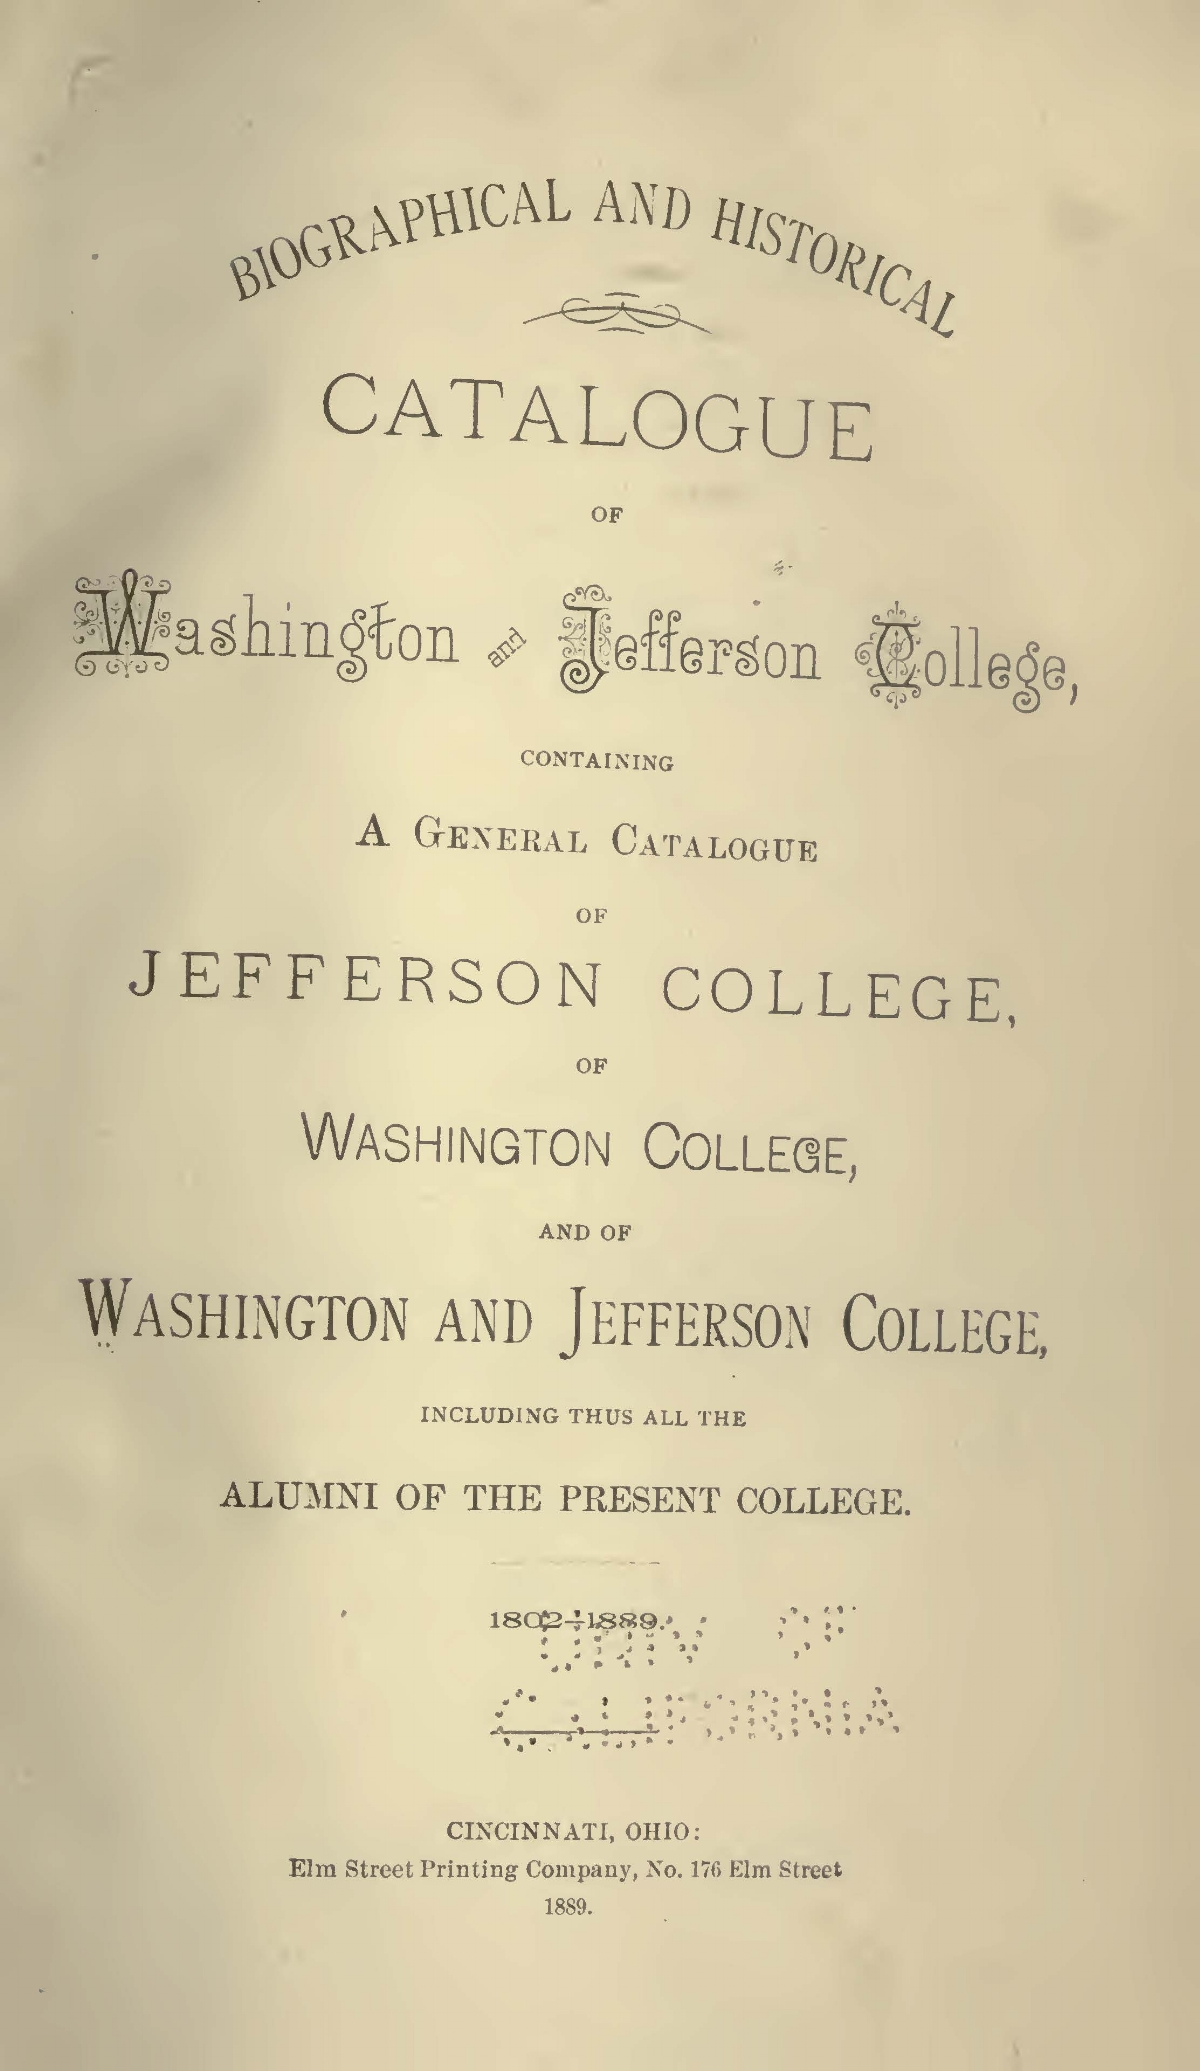 Eaton, Samuel John Mills, Biographical and Historical Catalogue of Washington and Jefferson College Title Page.jpg